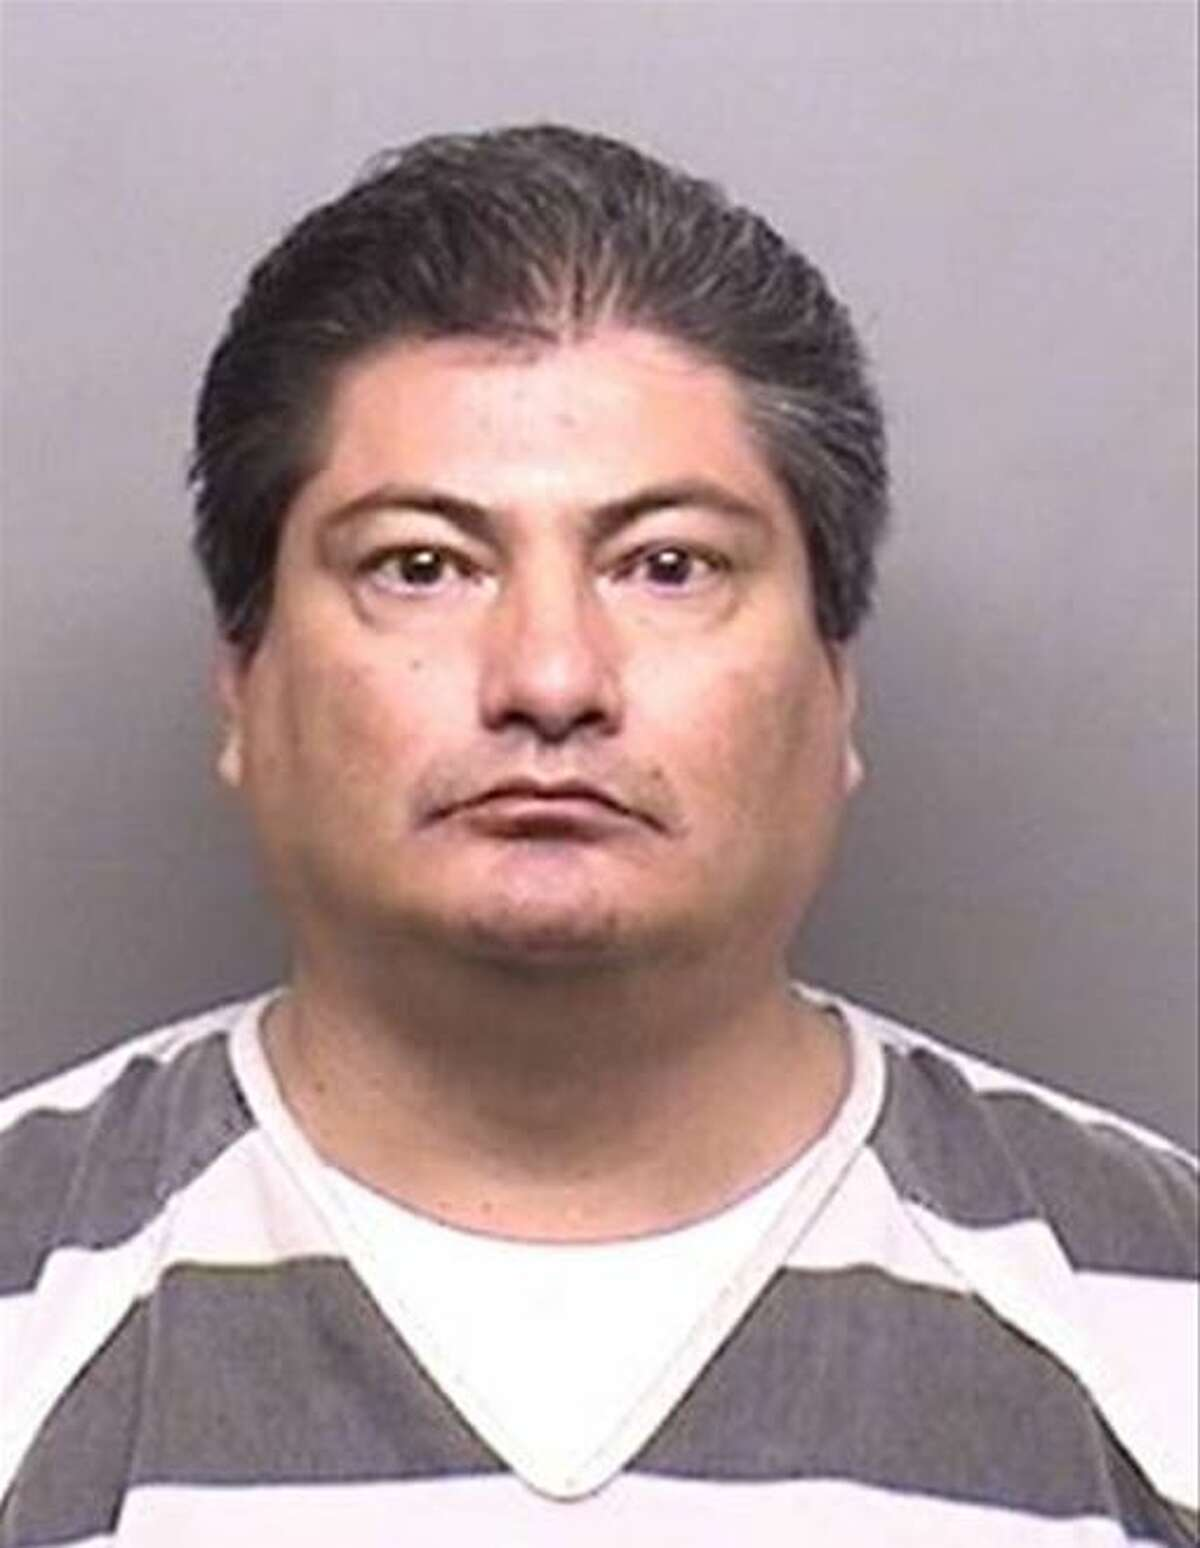 A grand jury indicted Sergio Delfino Garcia on a second-degree felony charge of theft of property between $100,000 and $200,000.